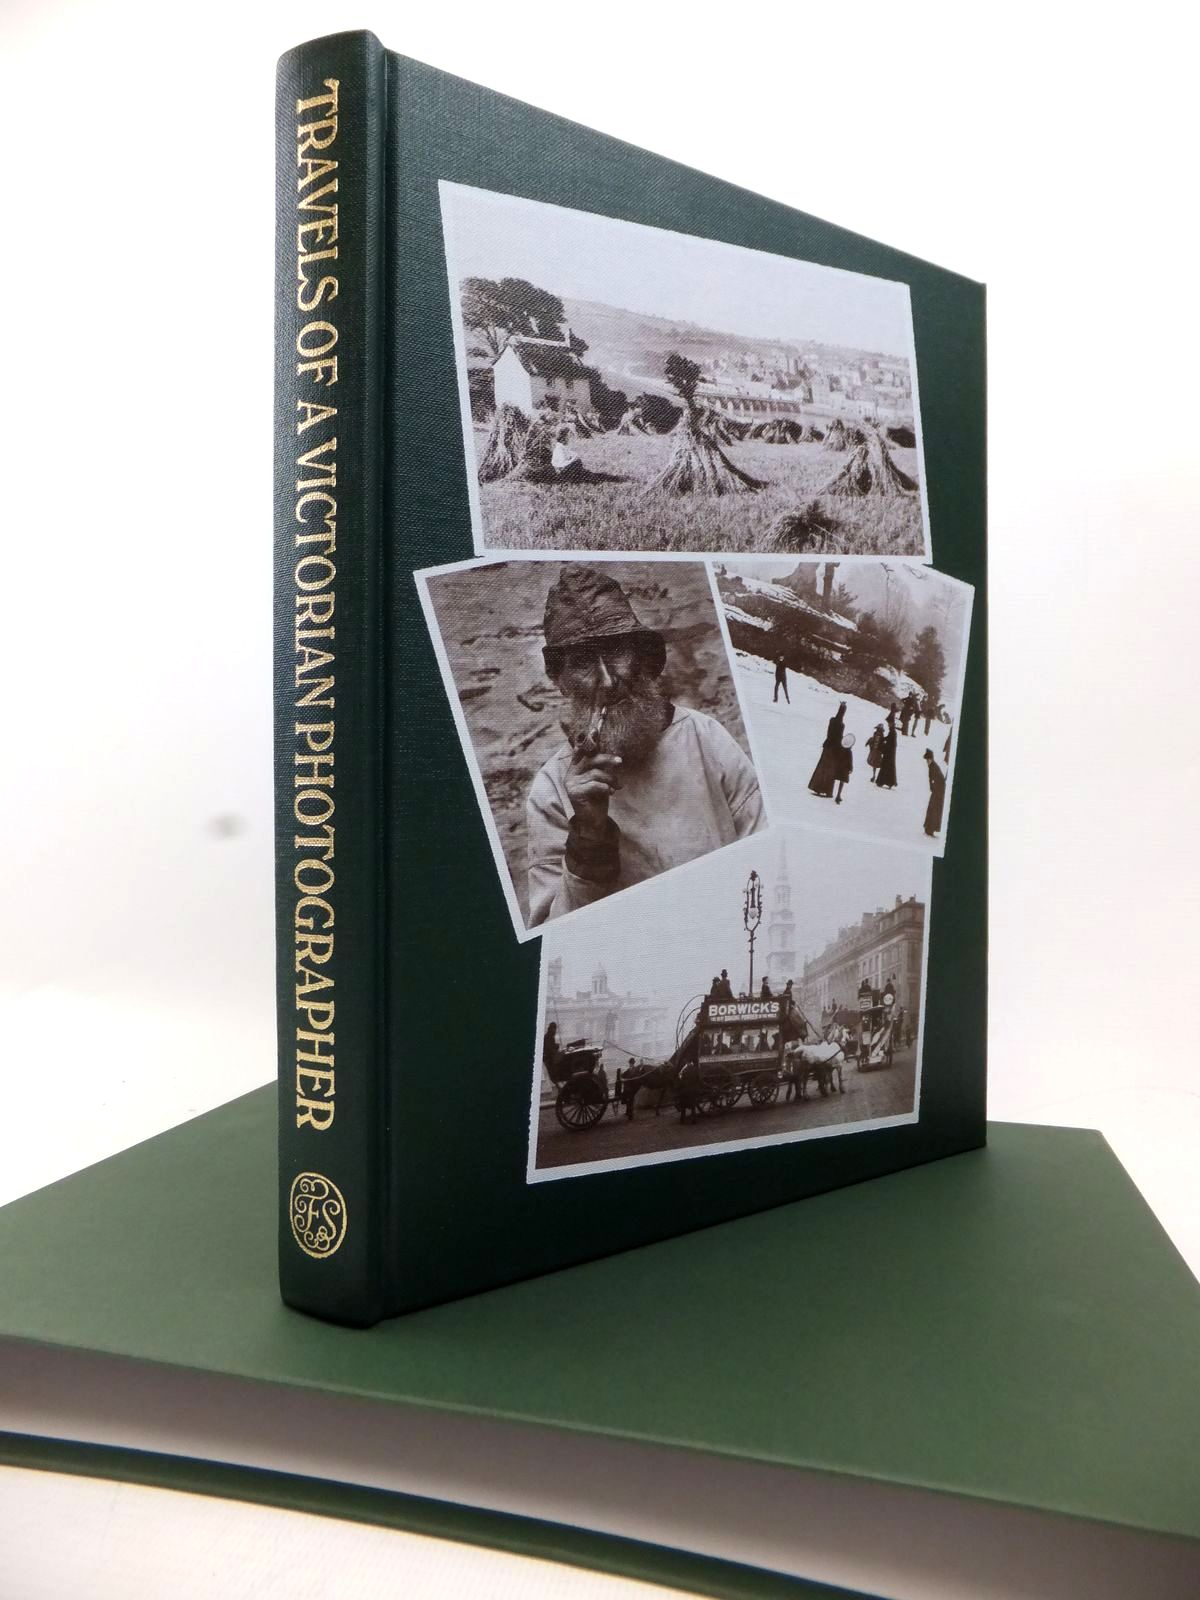 Photo of TRAVELS OF A VICTORIAN PHOTOGRAPHER written by Hudson, Roger illustrated by Frith, Francis published by Folio Society (STOCK CODE: 1813697)  for sale by Stella & Rose's Books